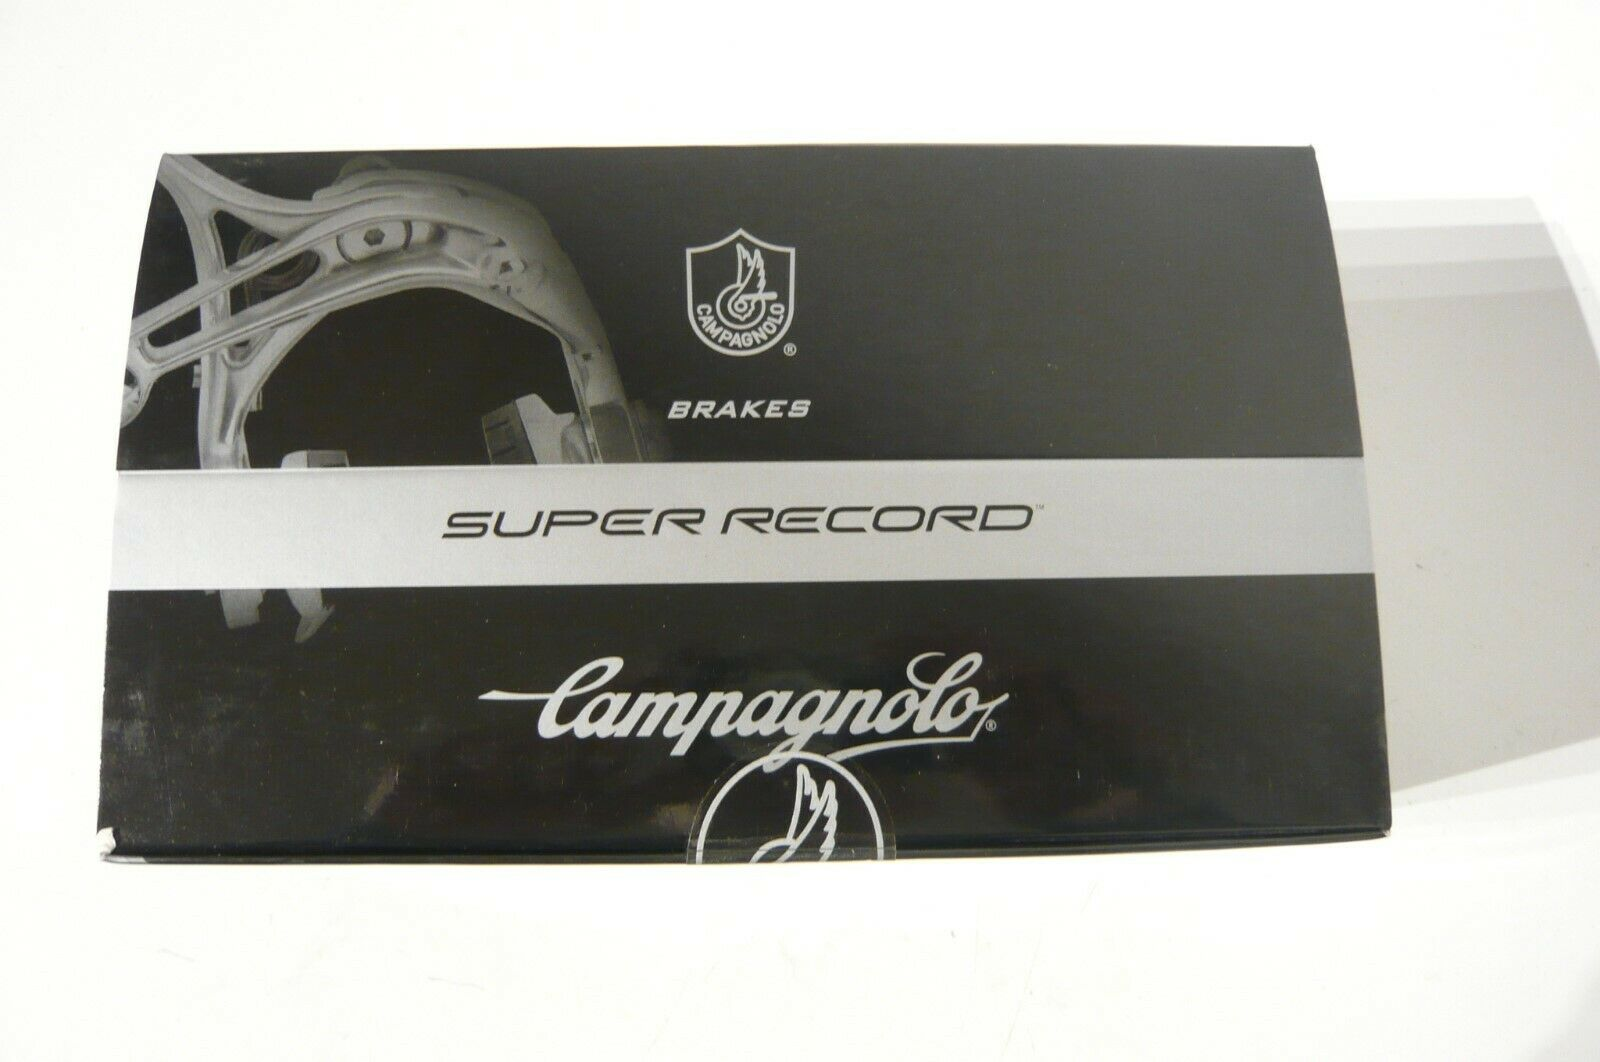 Campagnolo  BR9-SR Super Record  2009 Skeleton differential  brake caliper set  famous brand